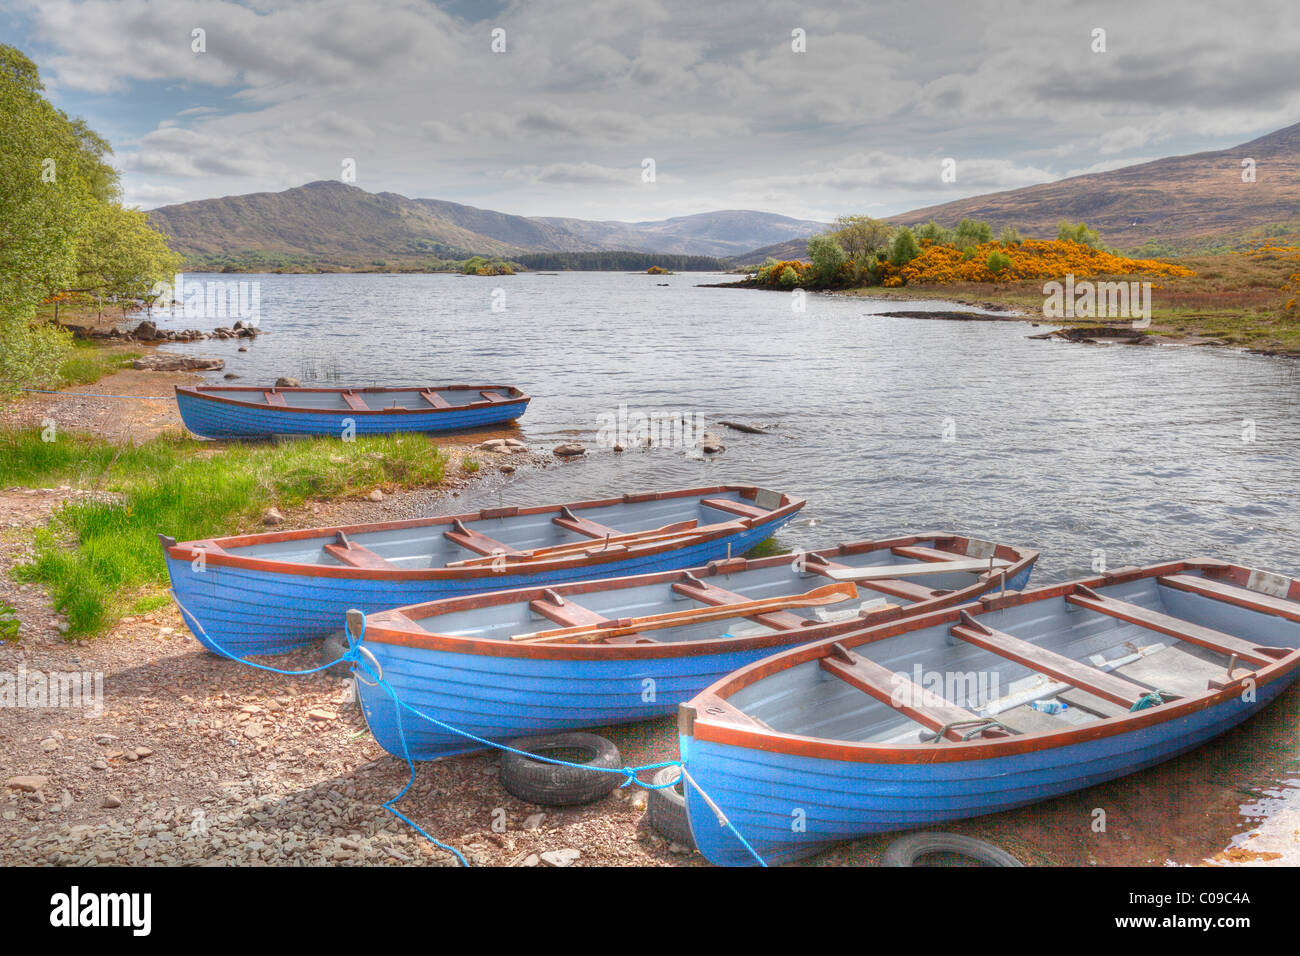 Barges, Cloonee Lakes, Cloonee Loughs, Beara Peninsula, County Kerry, Ireland, British Isles, Europe - Stock Image